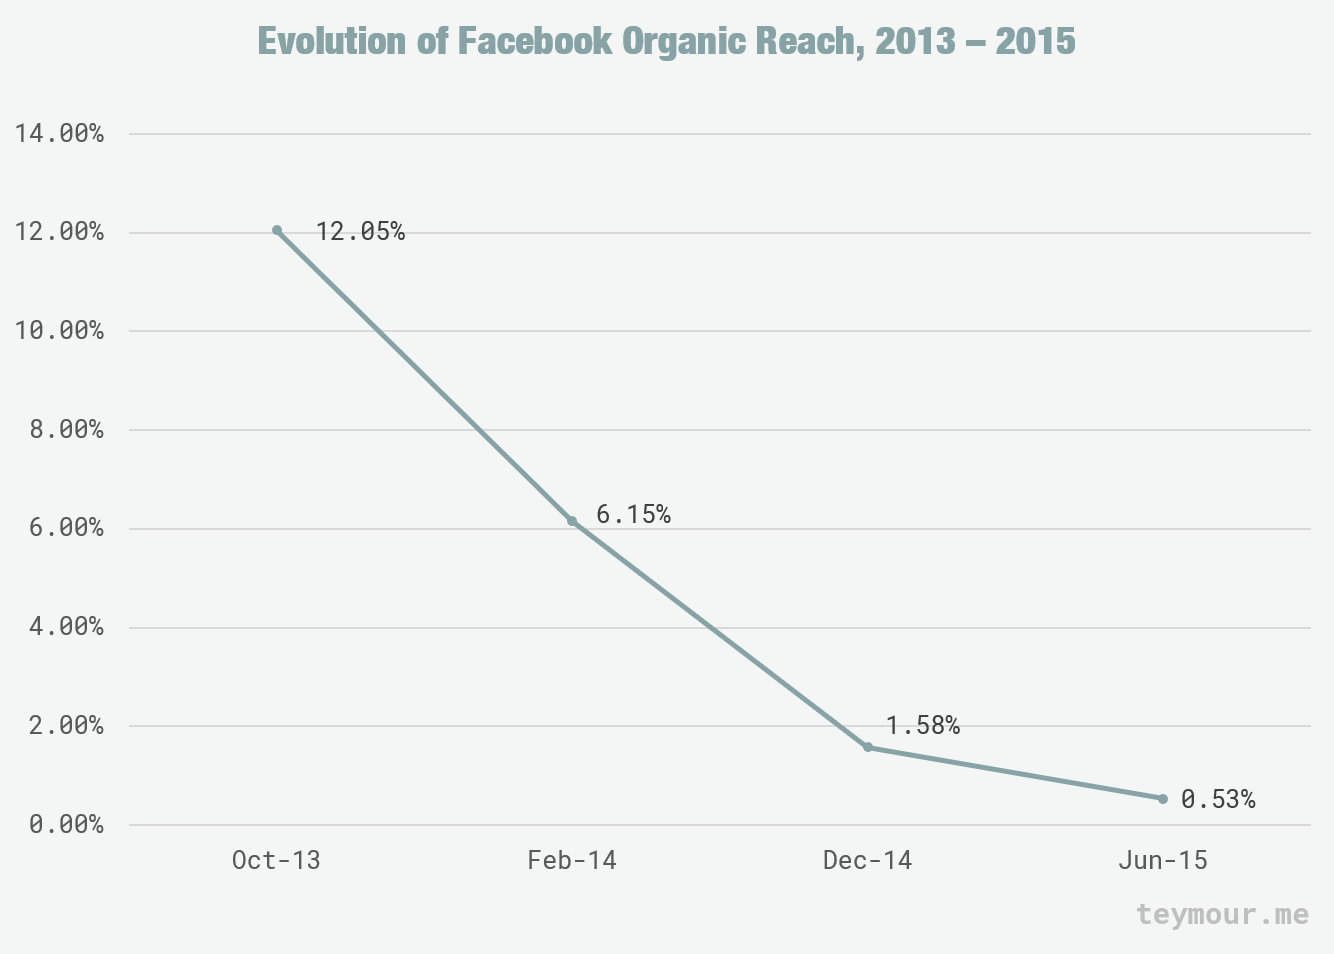 Evolution of Facebook's organic reach, Graph